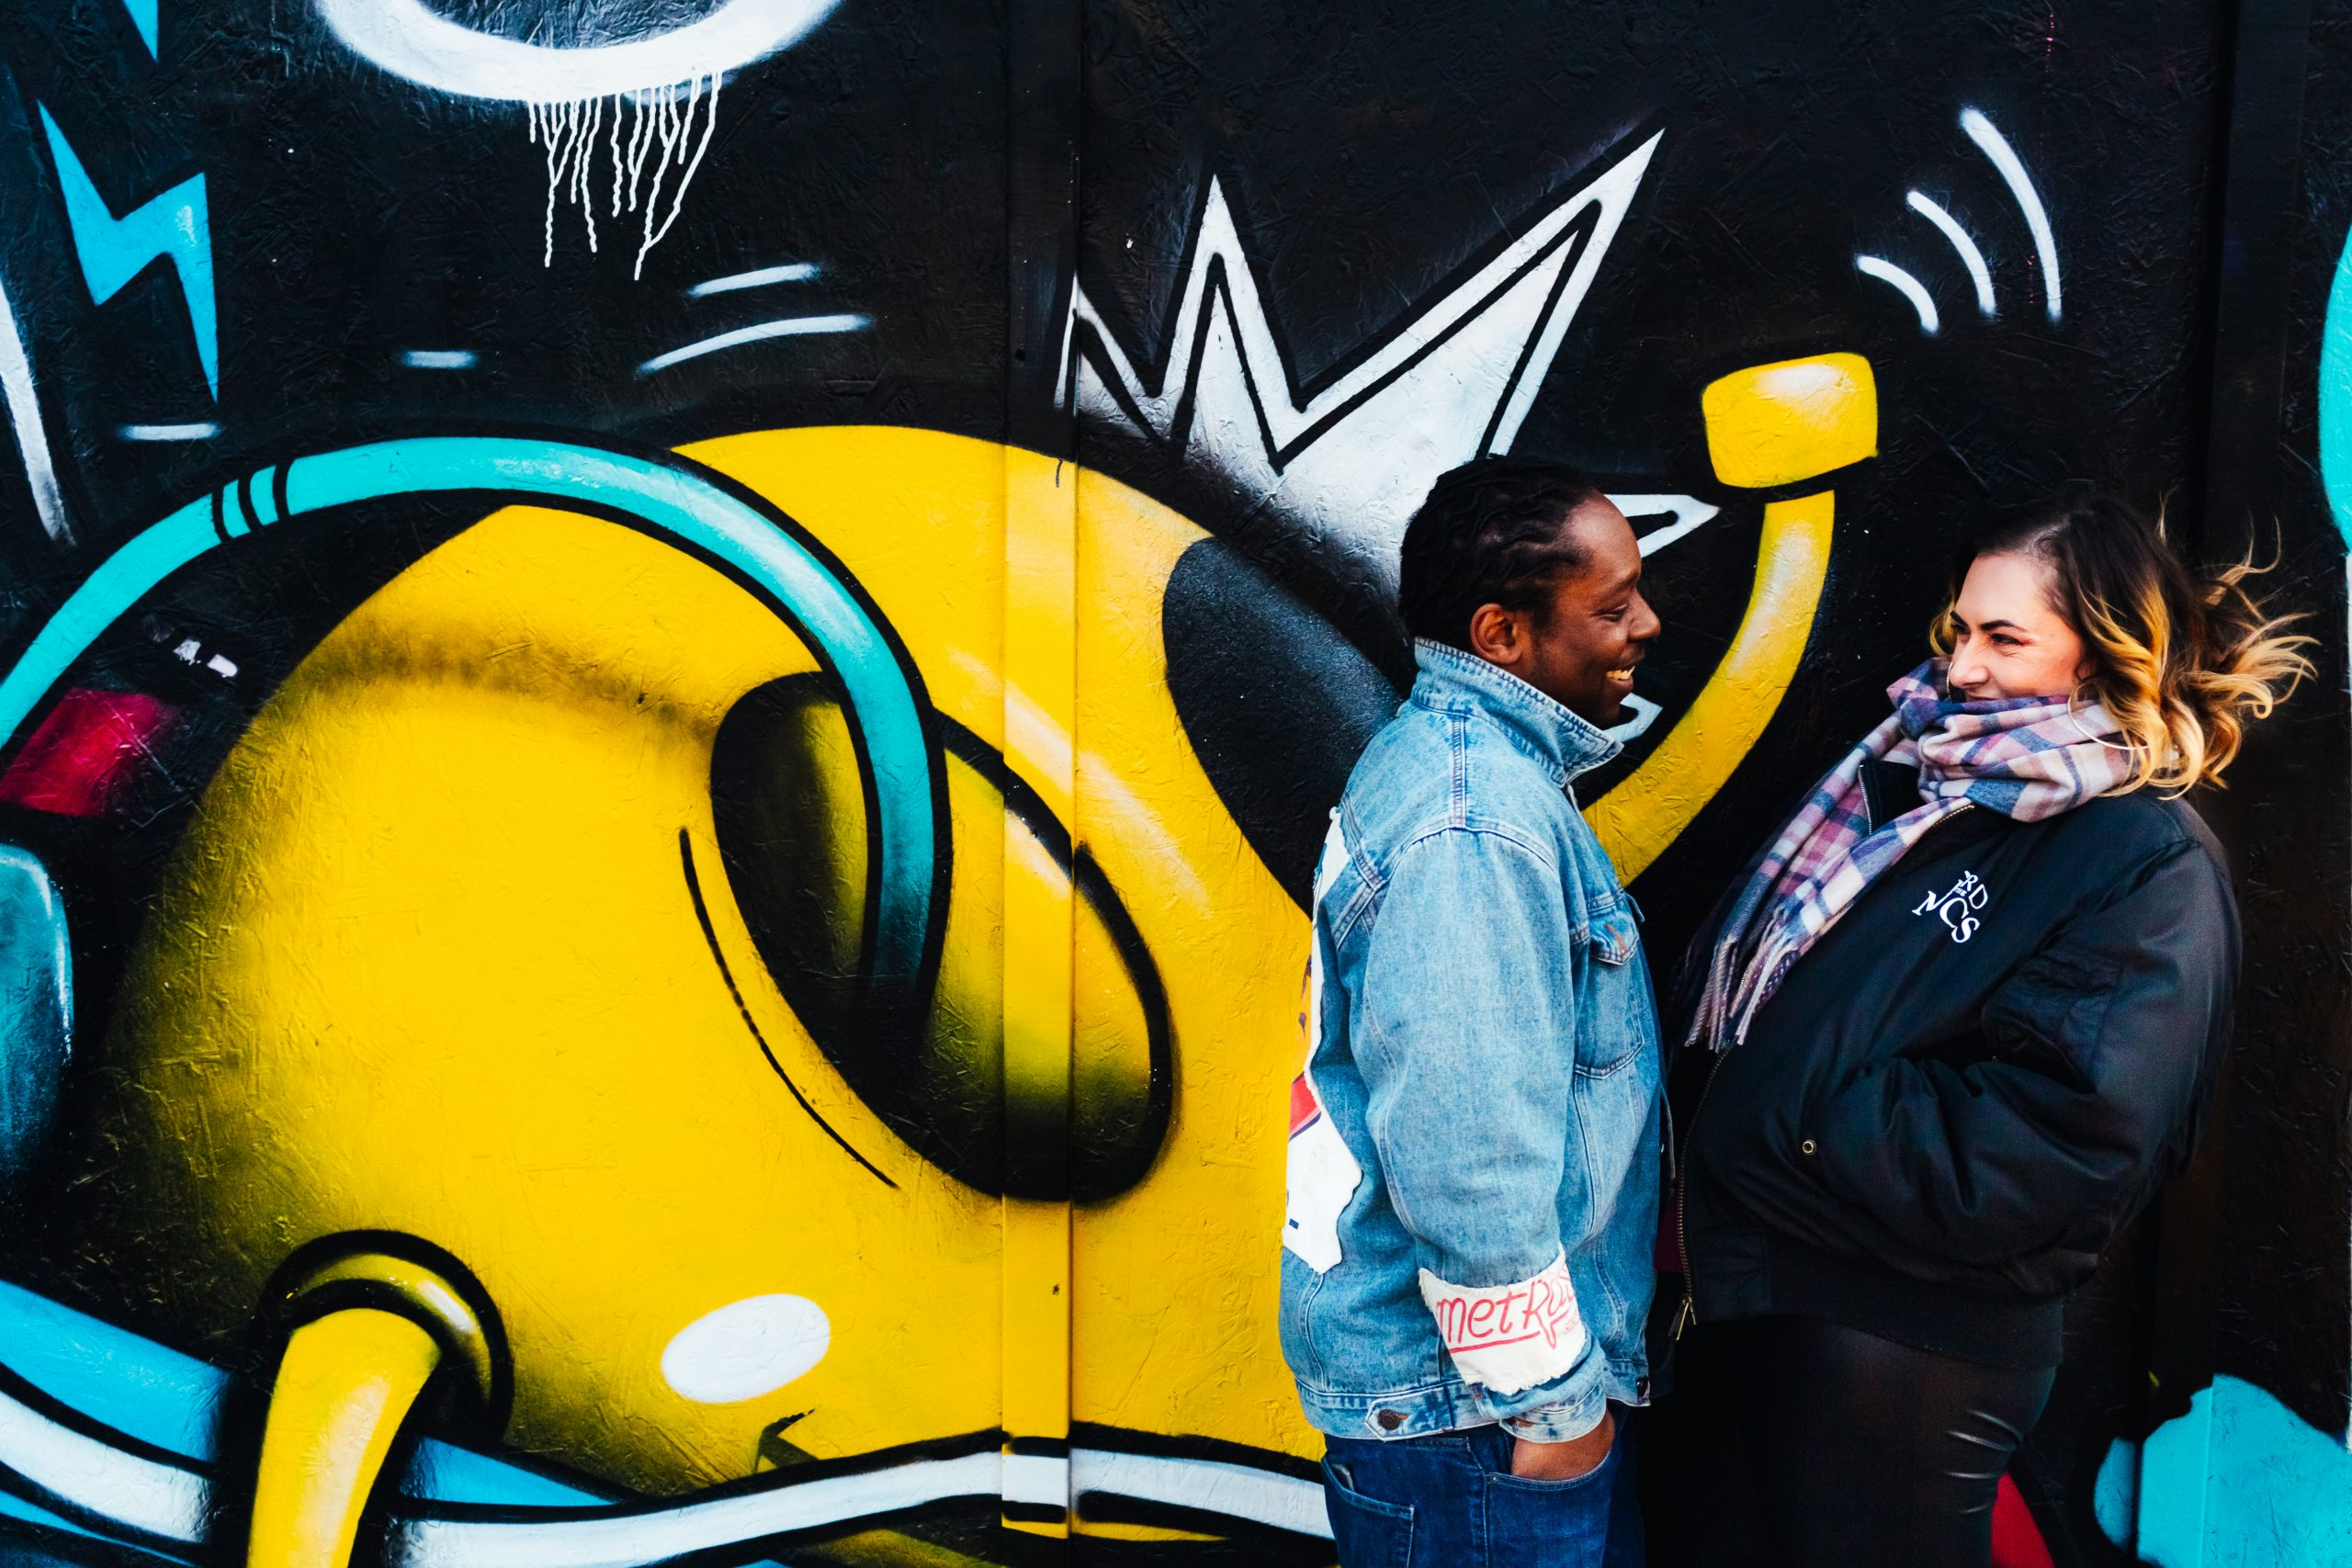 Fun engagement shoot - Couple in front of graffiti wall laughing together